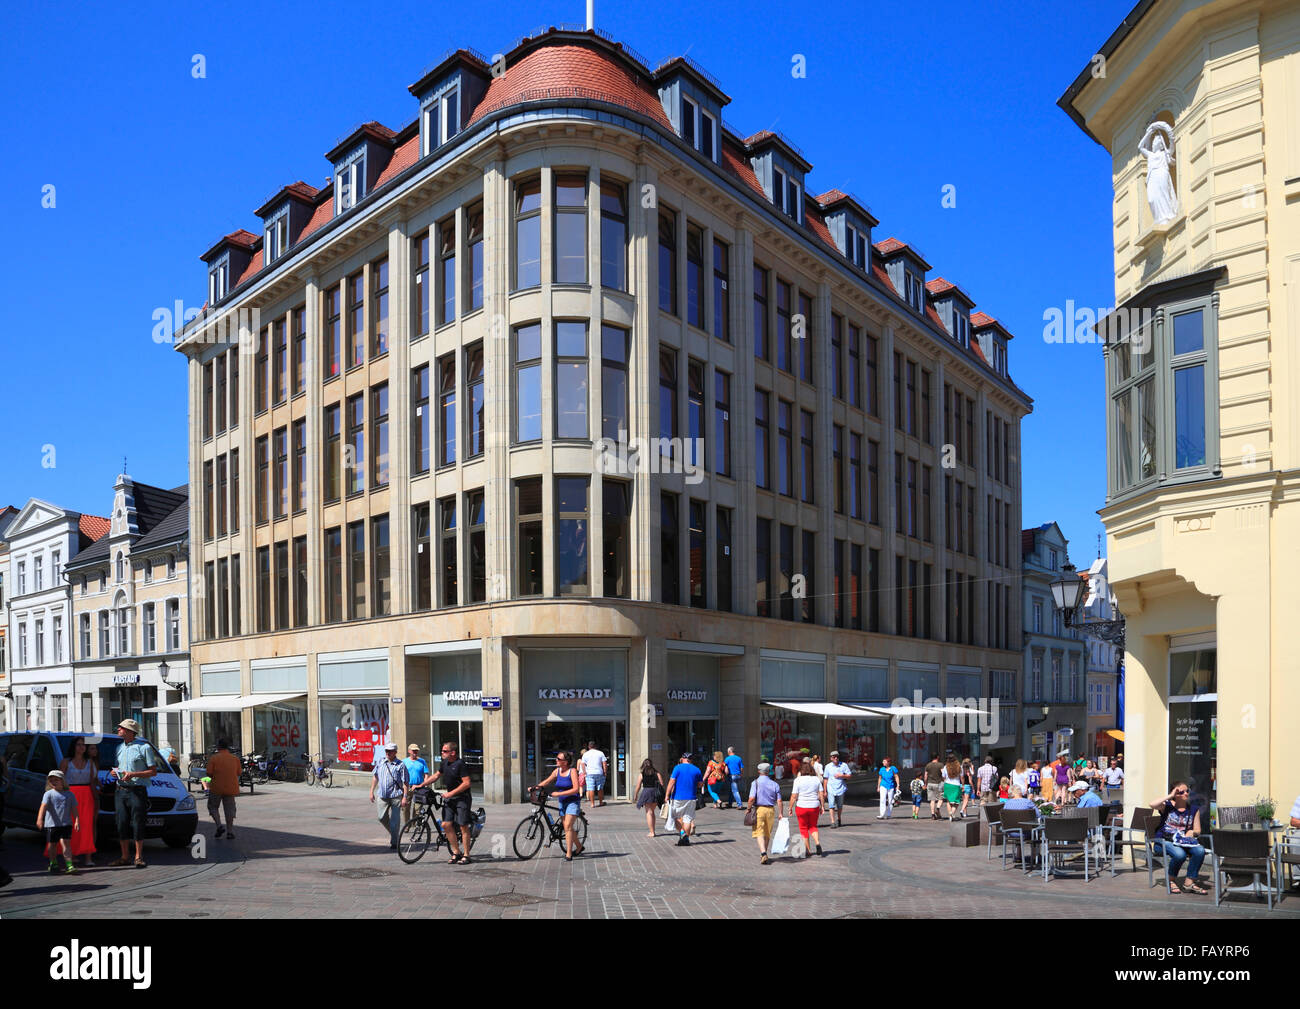 Karstadt warehouse, Wismar, Baltic Sea, Mecklenburg Western Pomerania, Germany, Europe - Stock Image